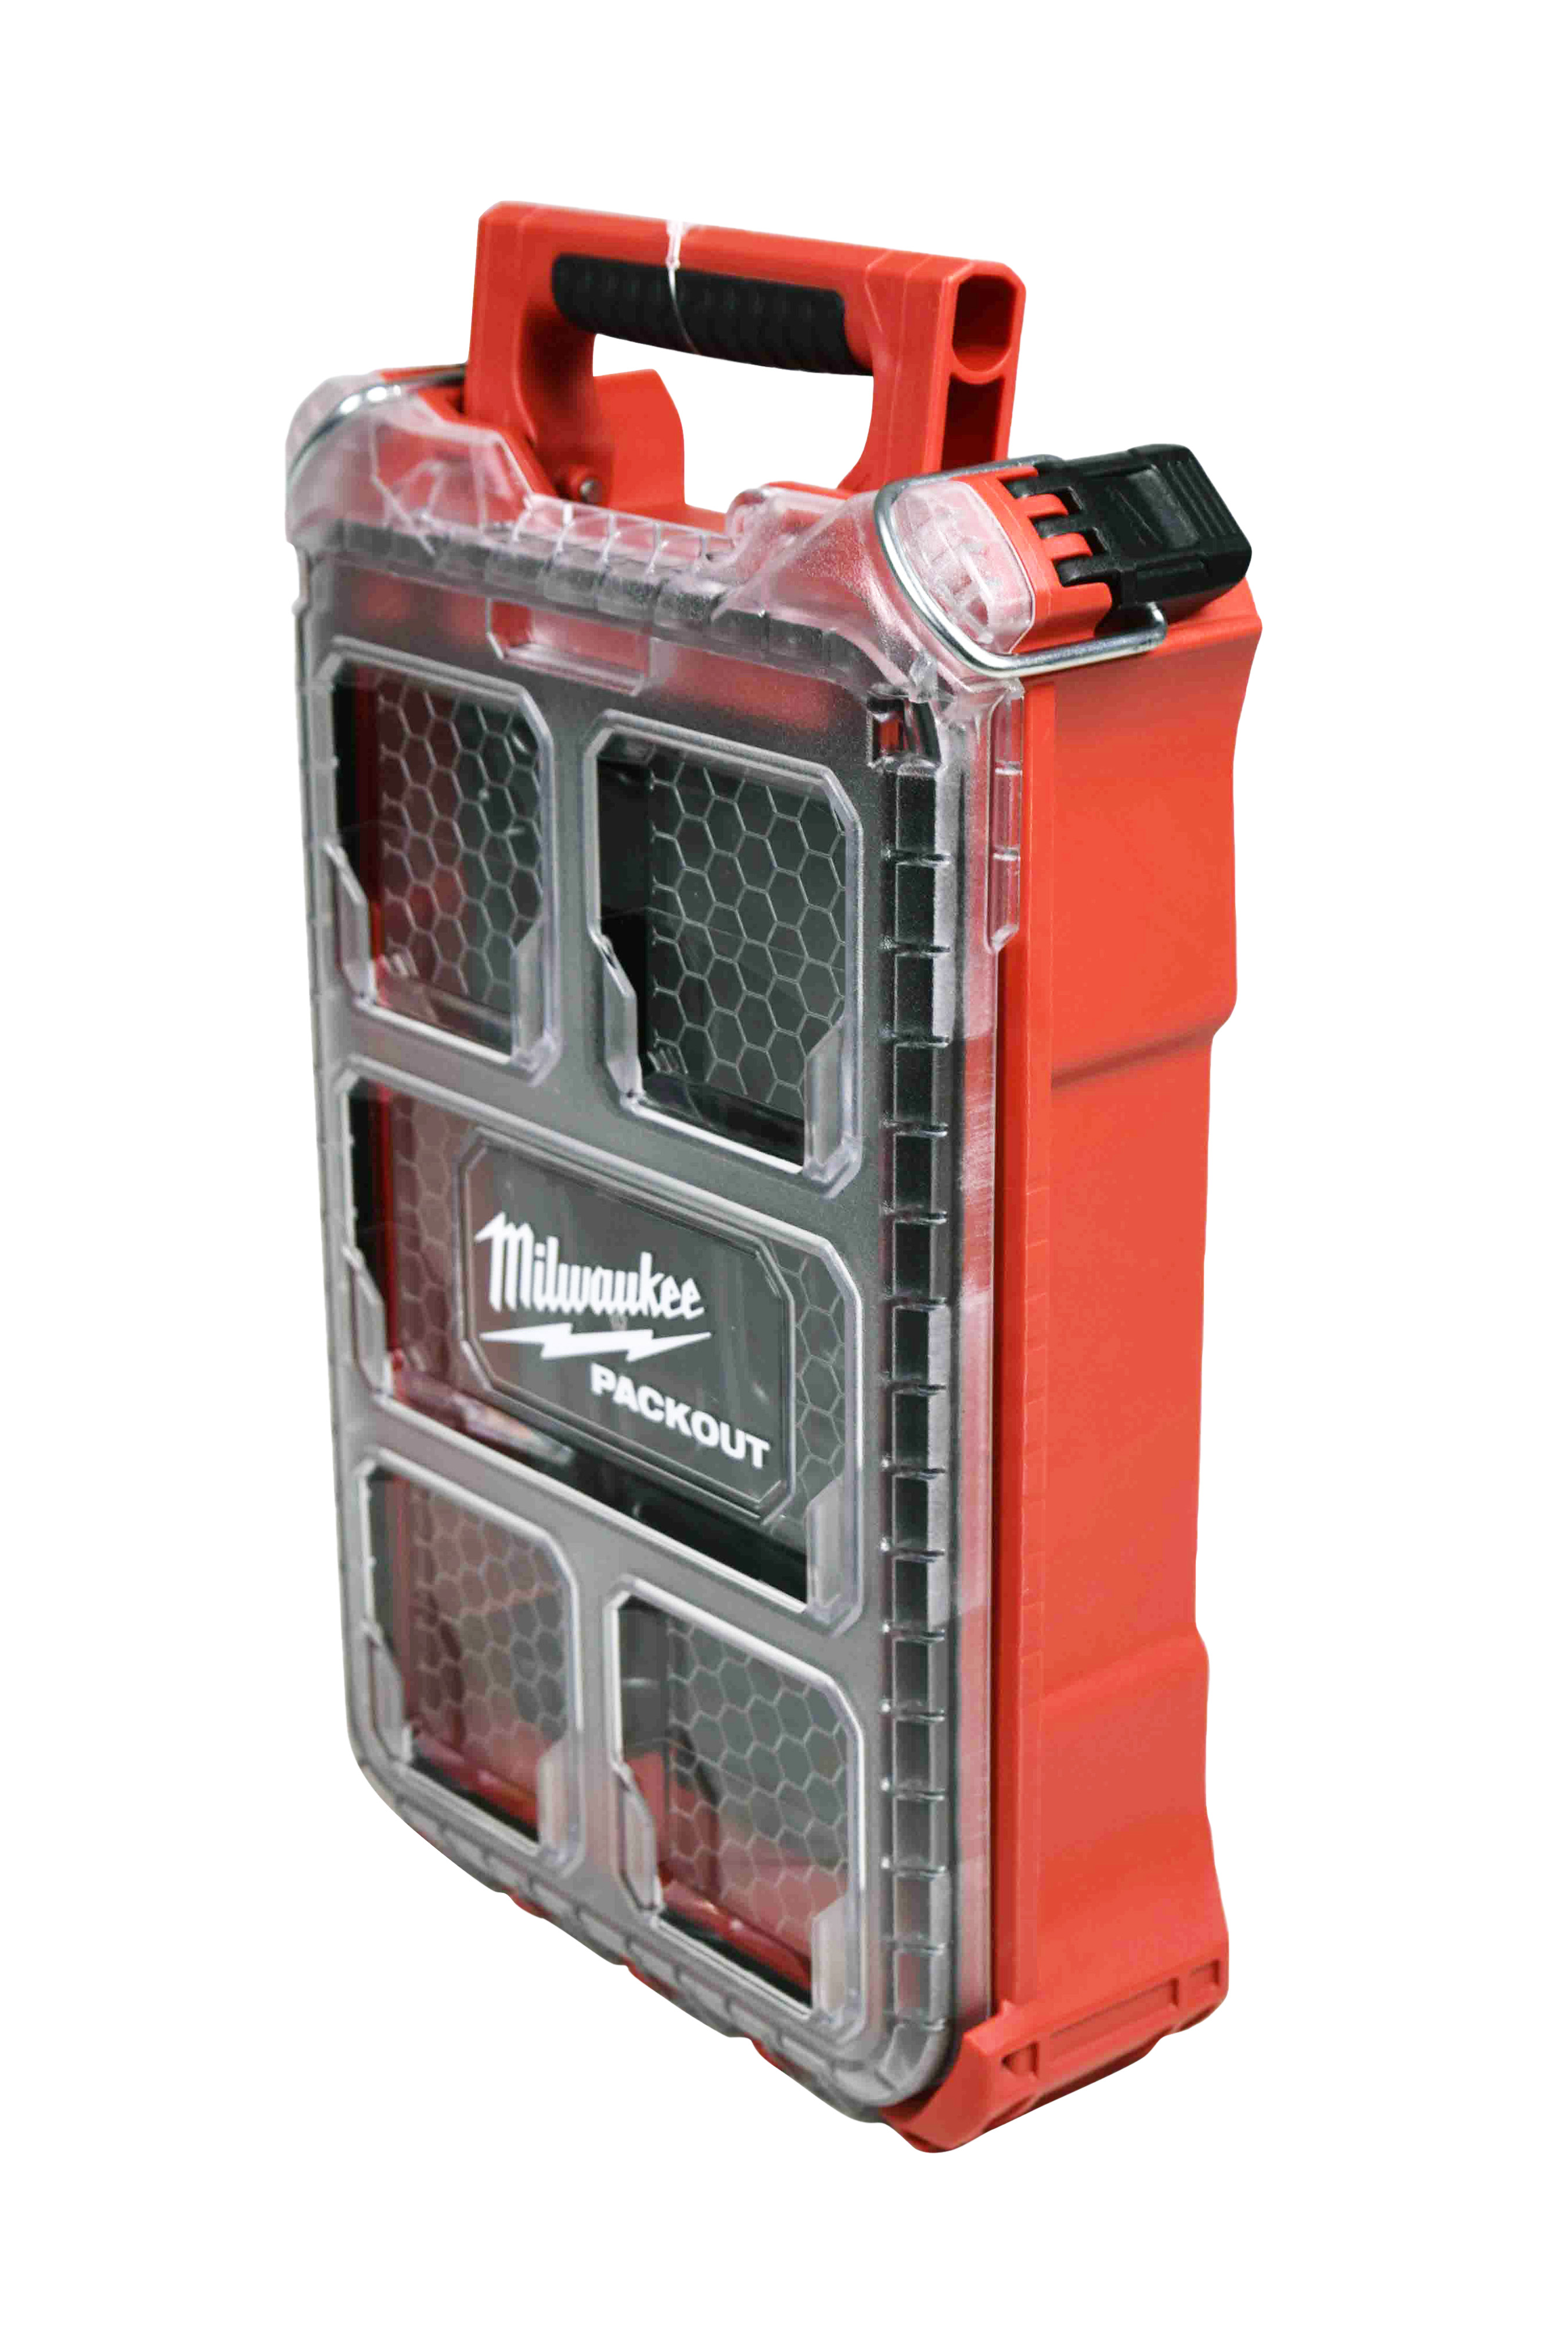 Milwaukee-48-22-8435-Impact-Resistant-Polymer-Packout-Compact-Organizer-image-1